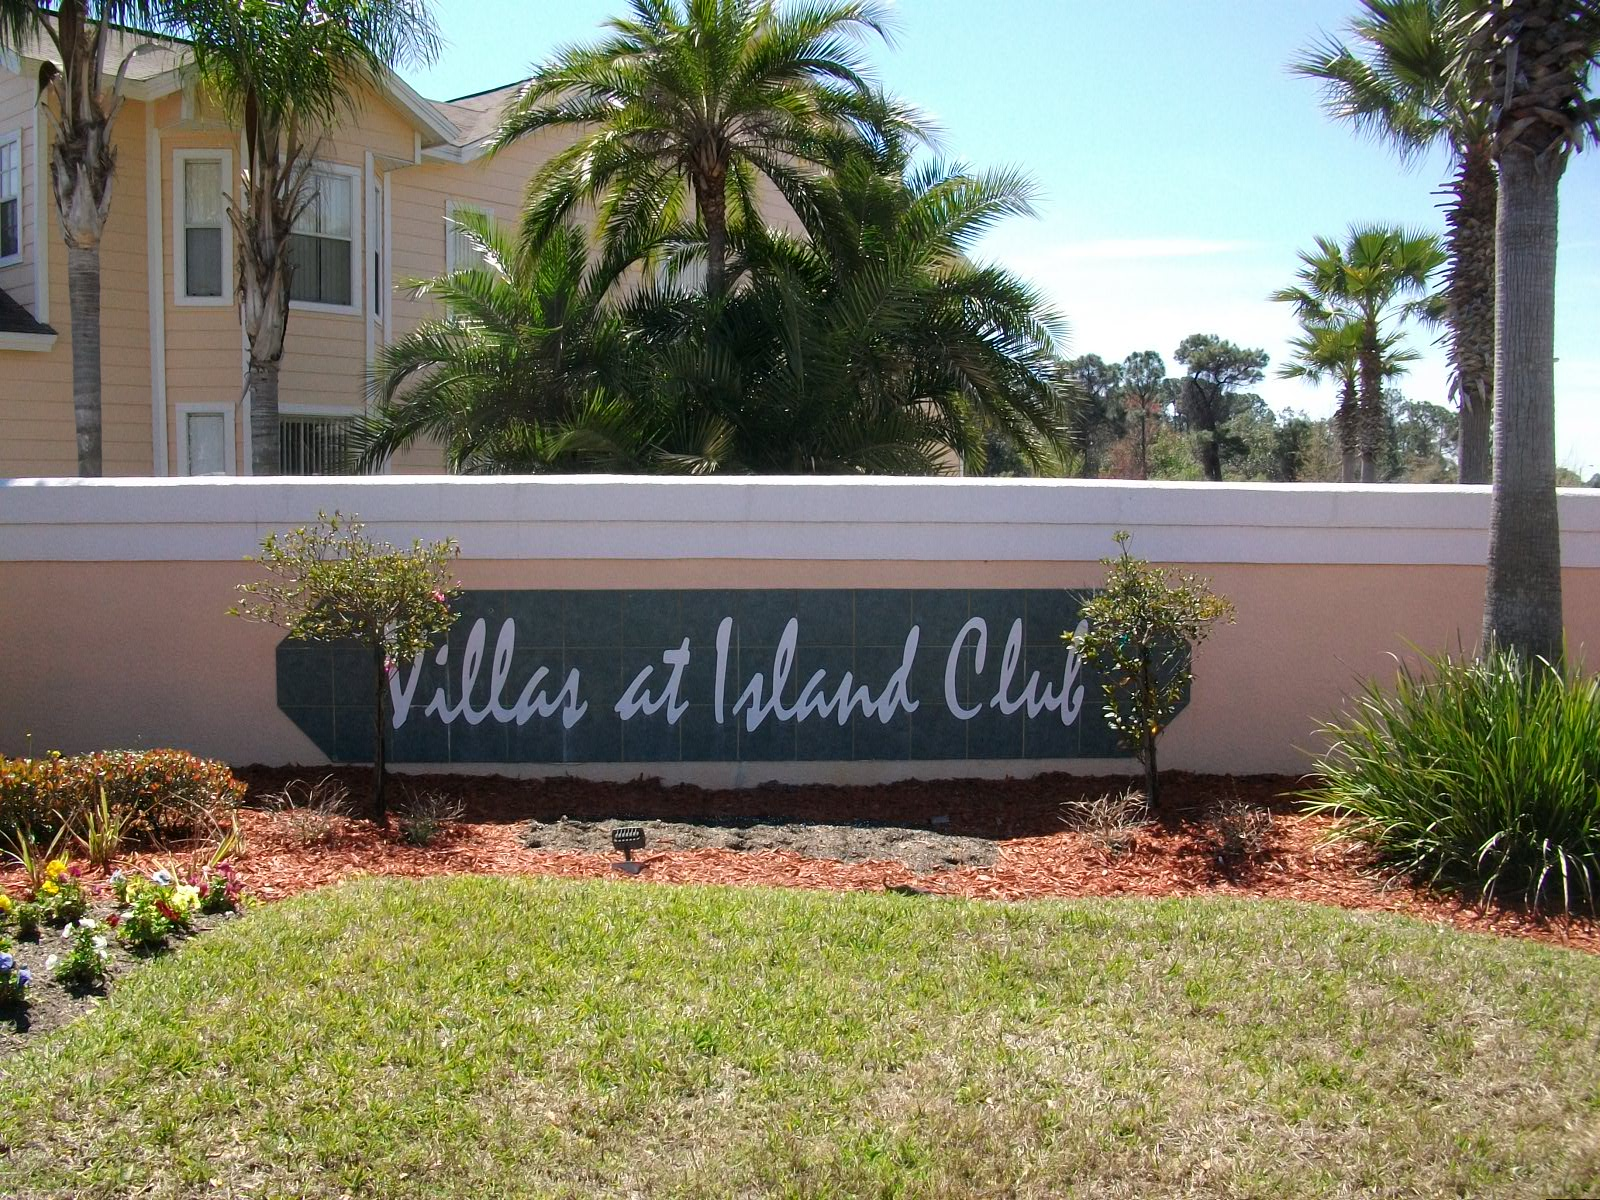 Villas at Island Club Kissimmee Fl